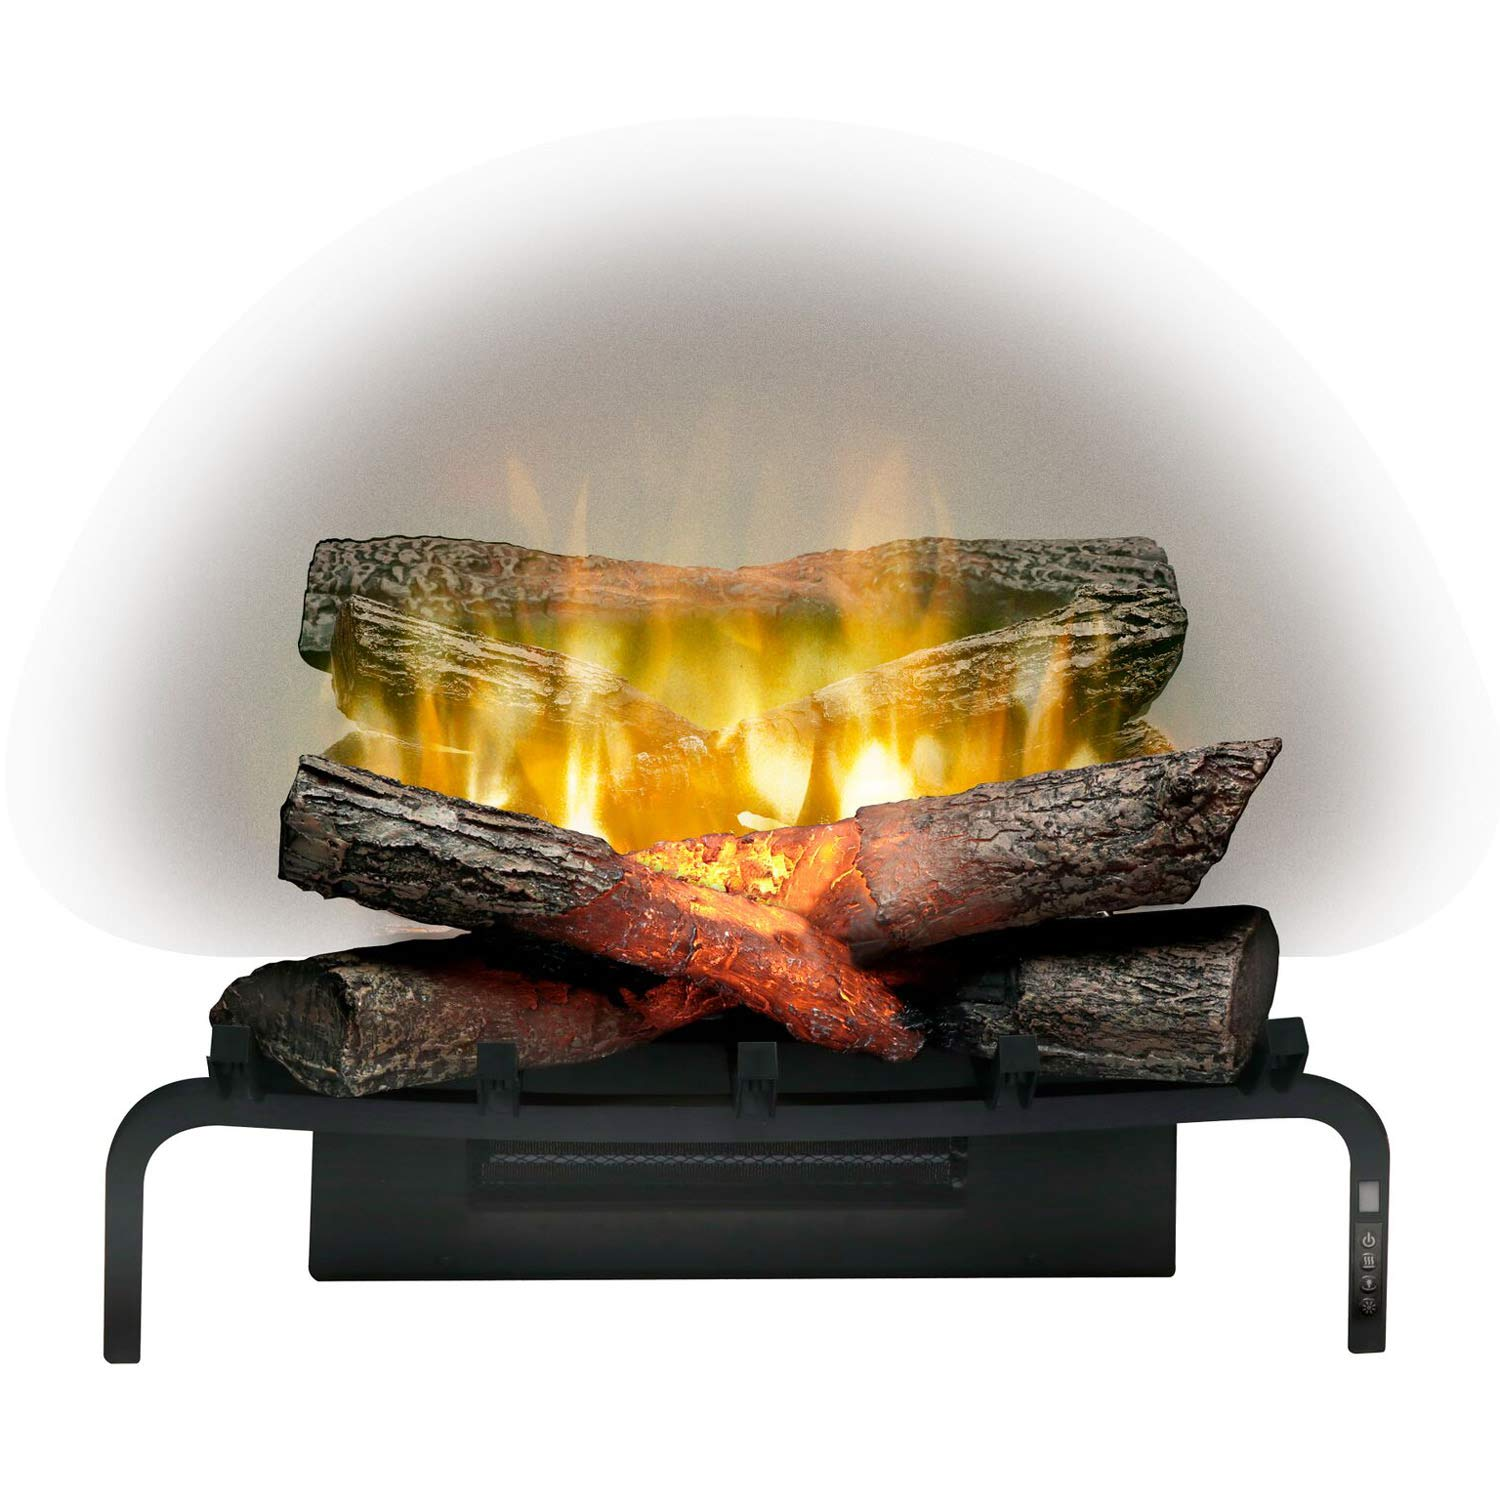 Dimplex Revillusion 20 inch Electric Fireplace Log Set (RLG20) - Best Electric FirePlaces